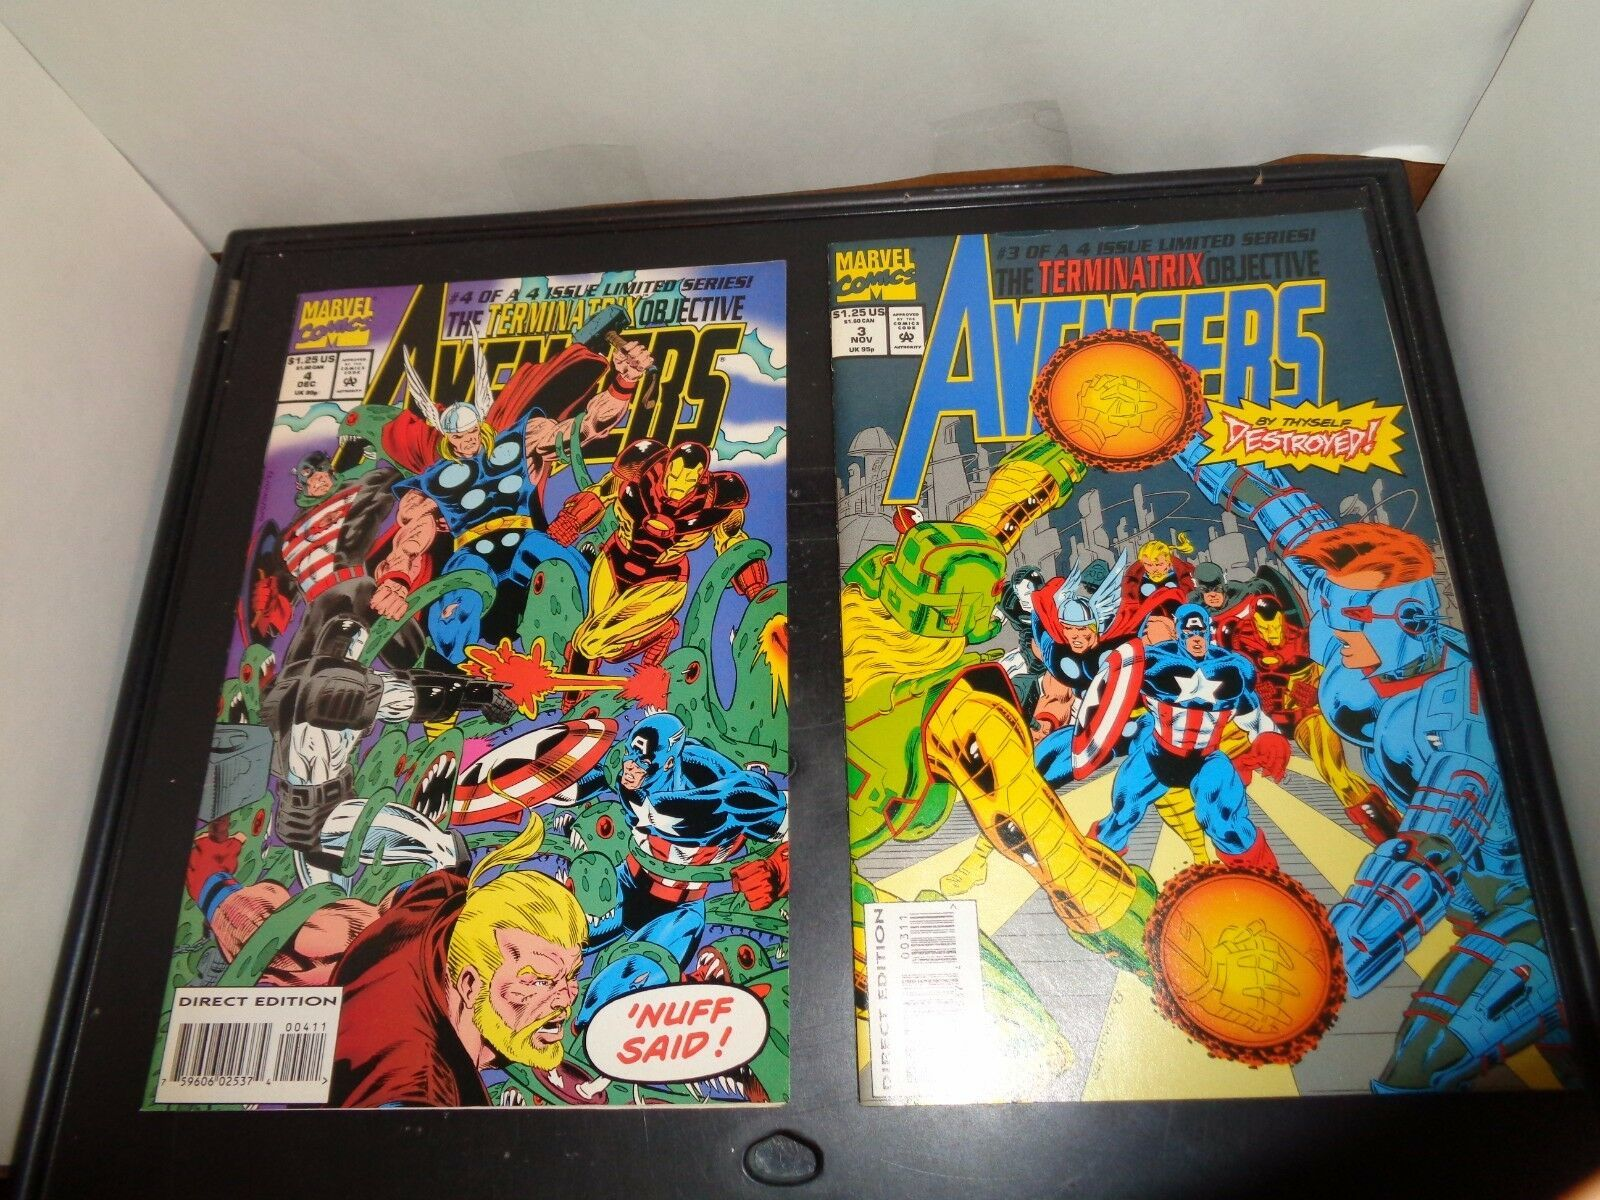 Avengers The Terminatrix Objectives #1-4 Complete Set VF Condition 1993 Marvel